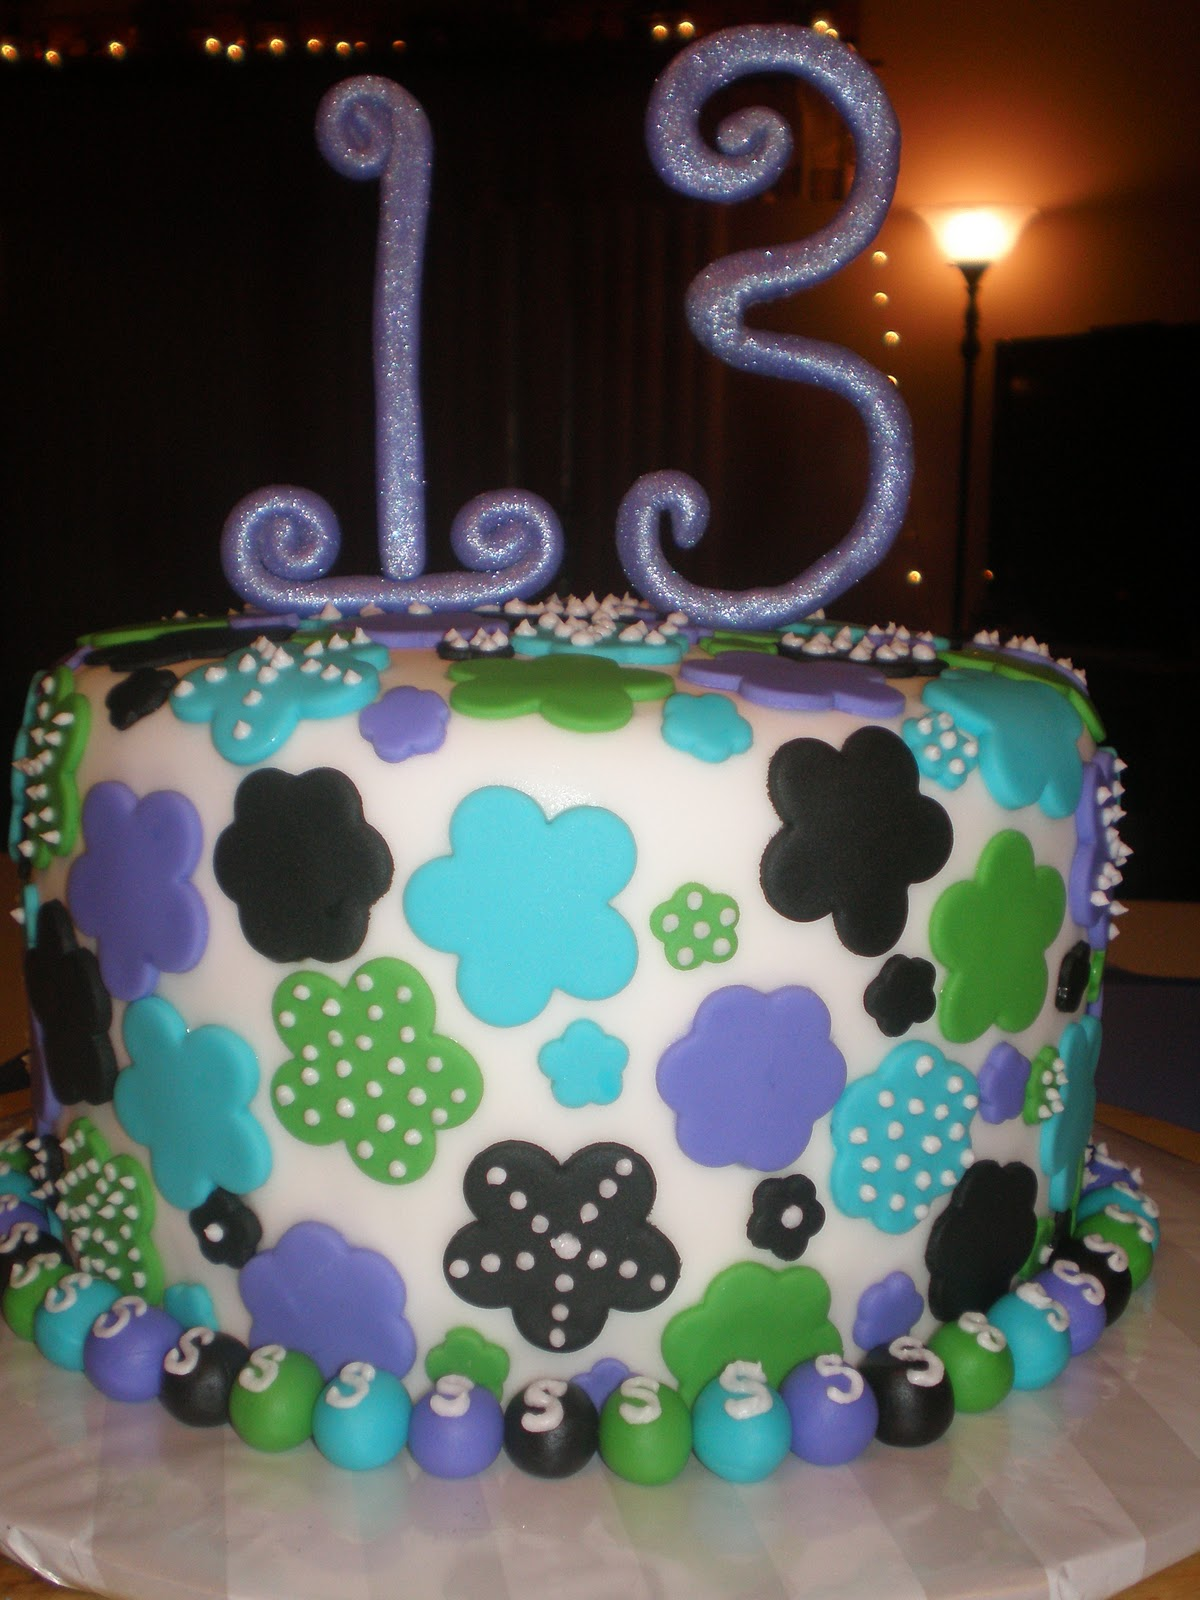 Creative Cakes By Moriah Skittles 13th Birthday Cake